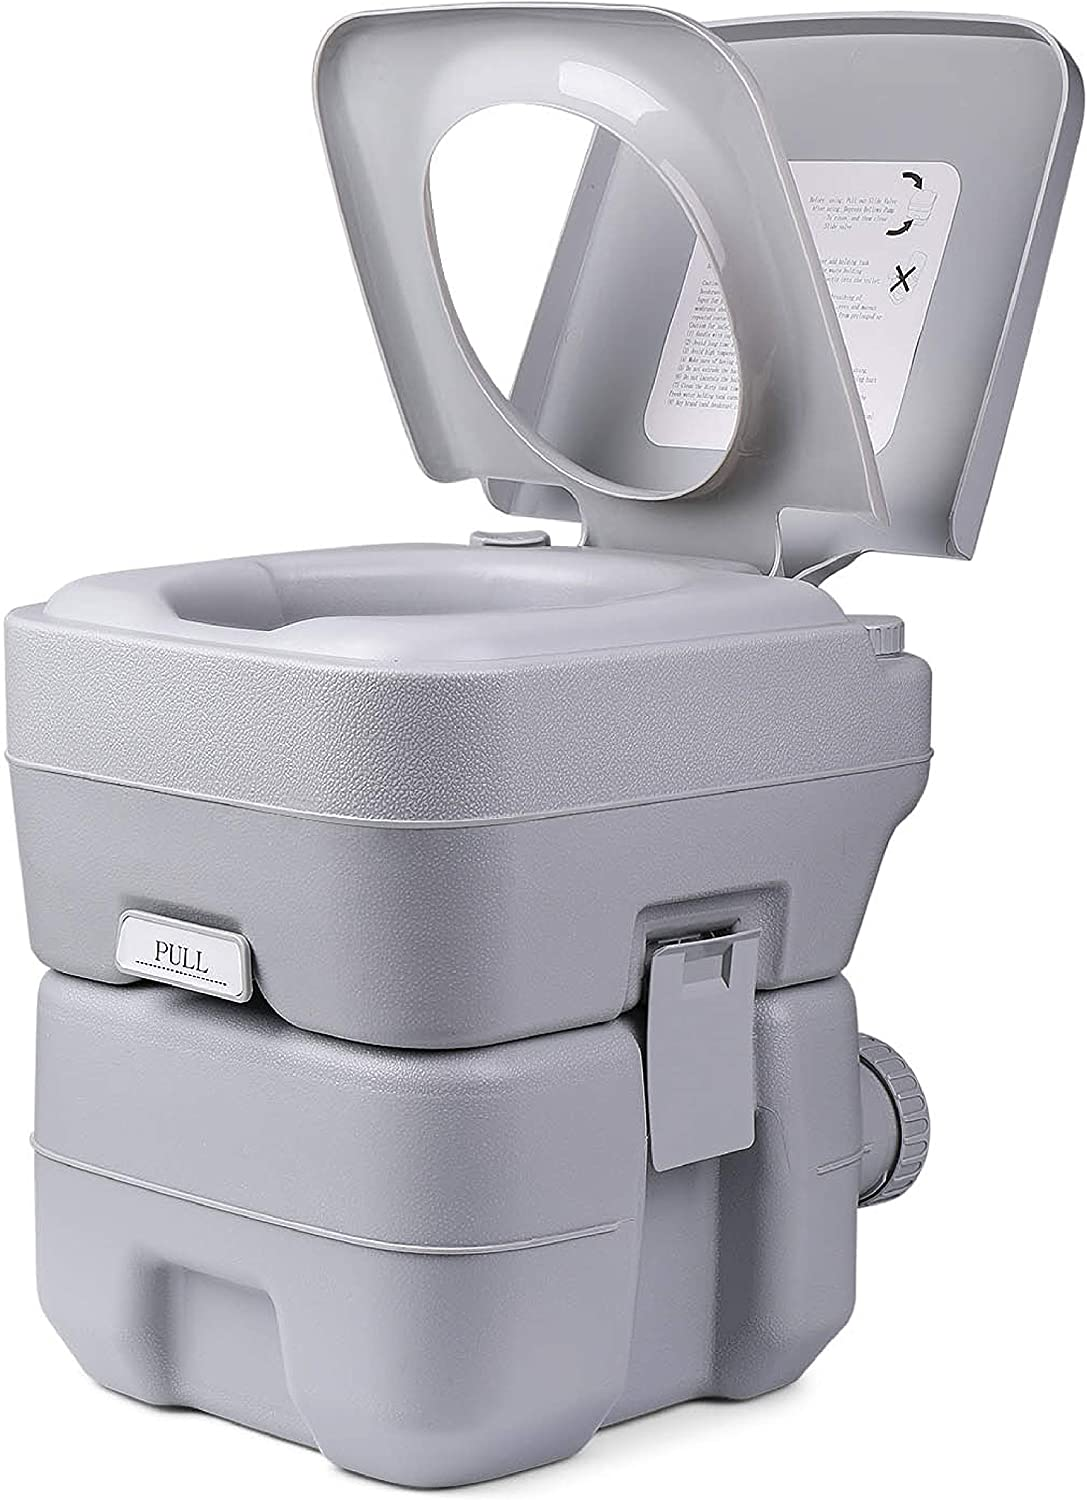 Flexzion Outdoor Portable Toilet - Travel Mobile Toilet Potty Seat w/ Large 5.3 Gal Water Tank & 3 Gal Waste Holding Tank, 3-Way Flush, Cover and for Camping Hiking RV Travel Boat Outdoors Hiking Trip